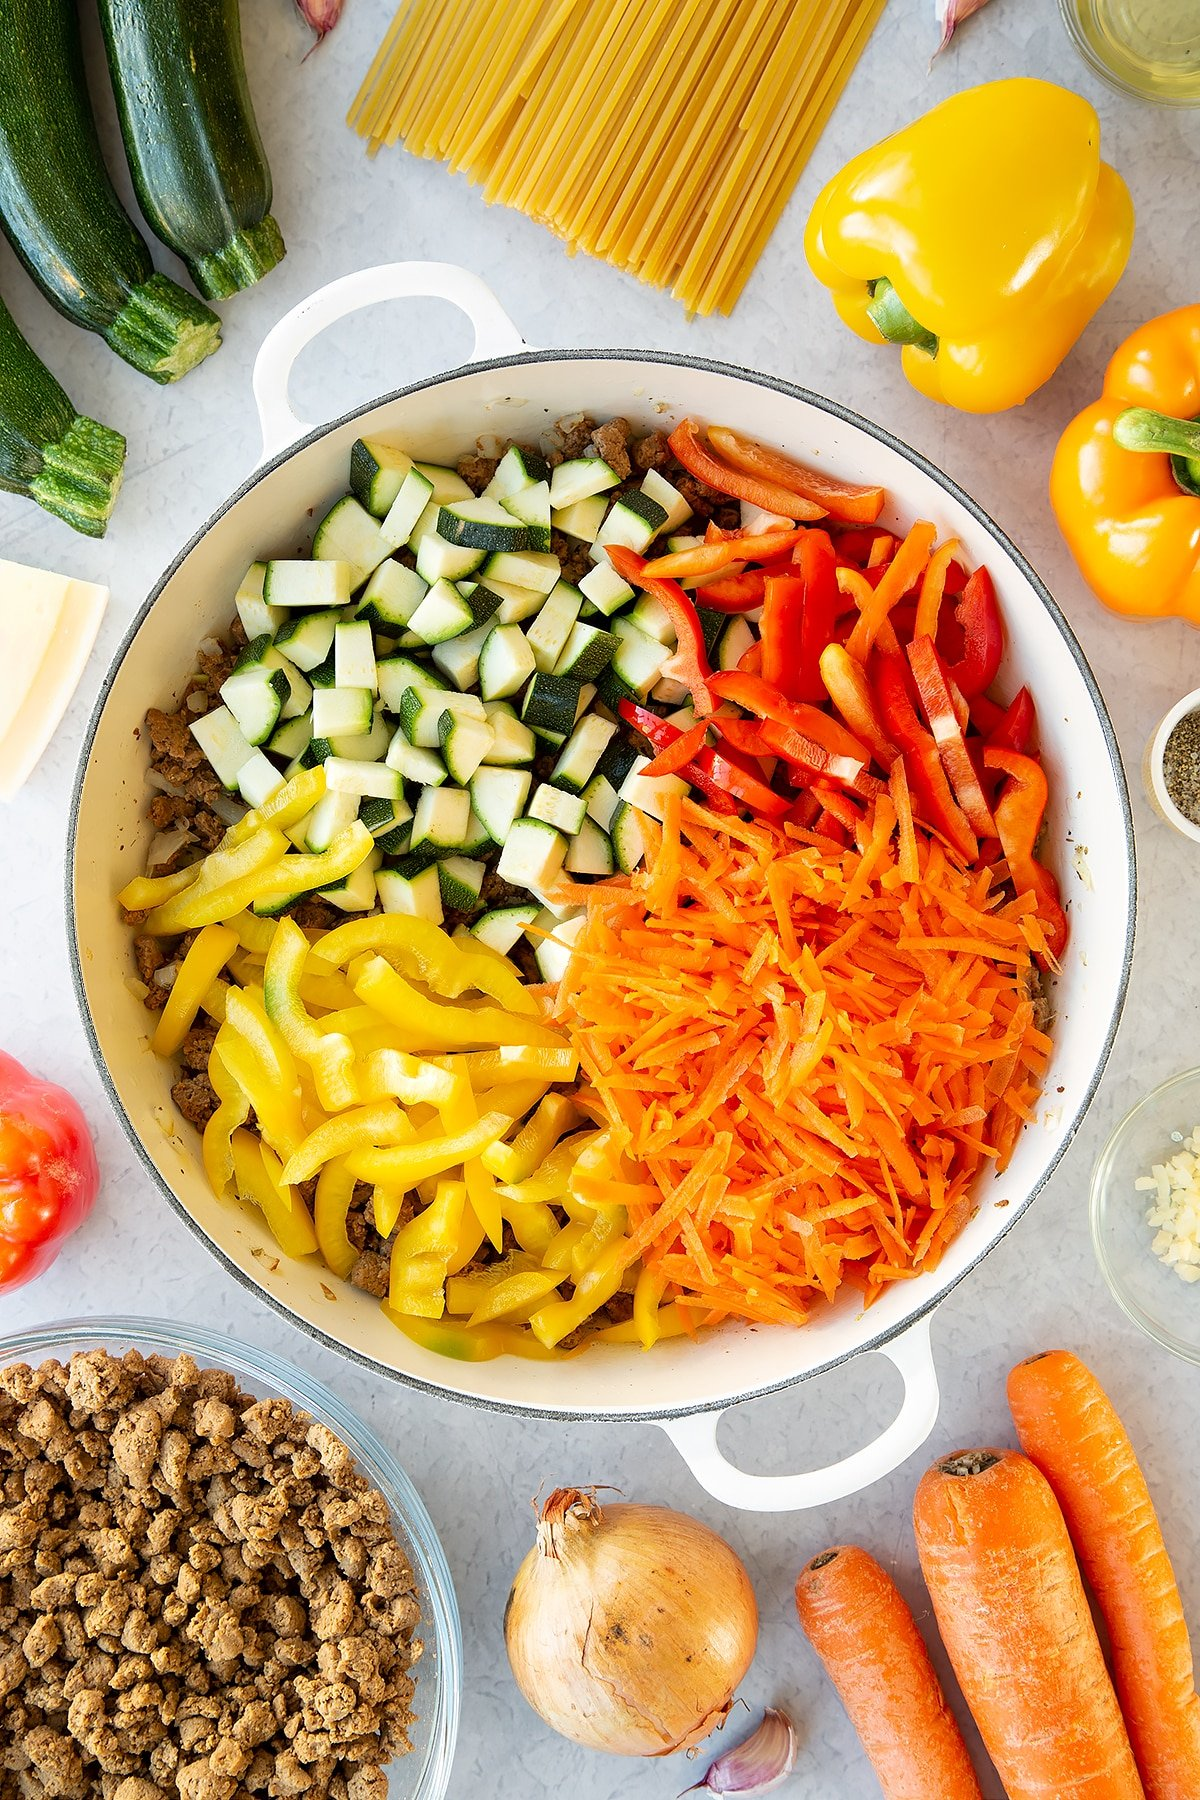 Veggie mince, garlic and onion sweated in a large pan with courgette, carrot and peppers on top. Ingredients to make one pot vegan bolognese surround the pan.